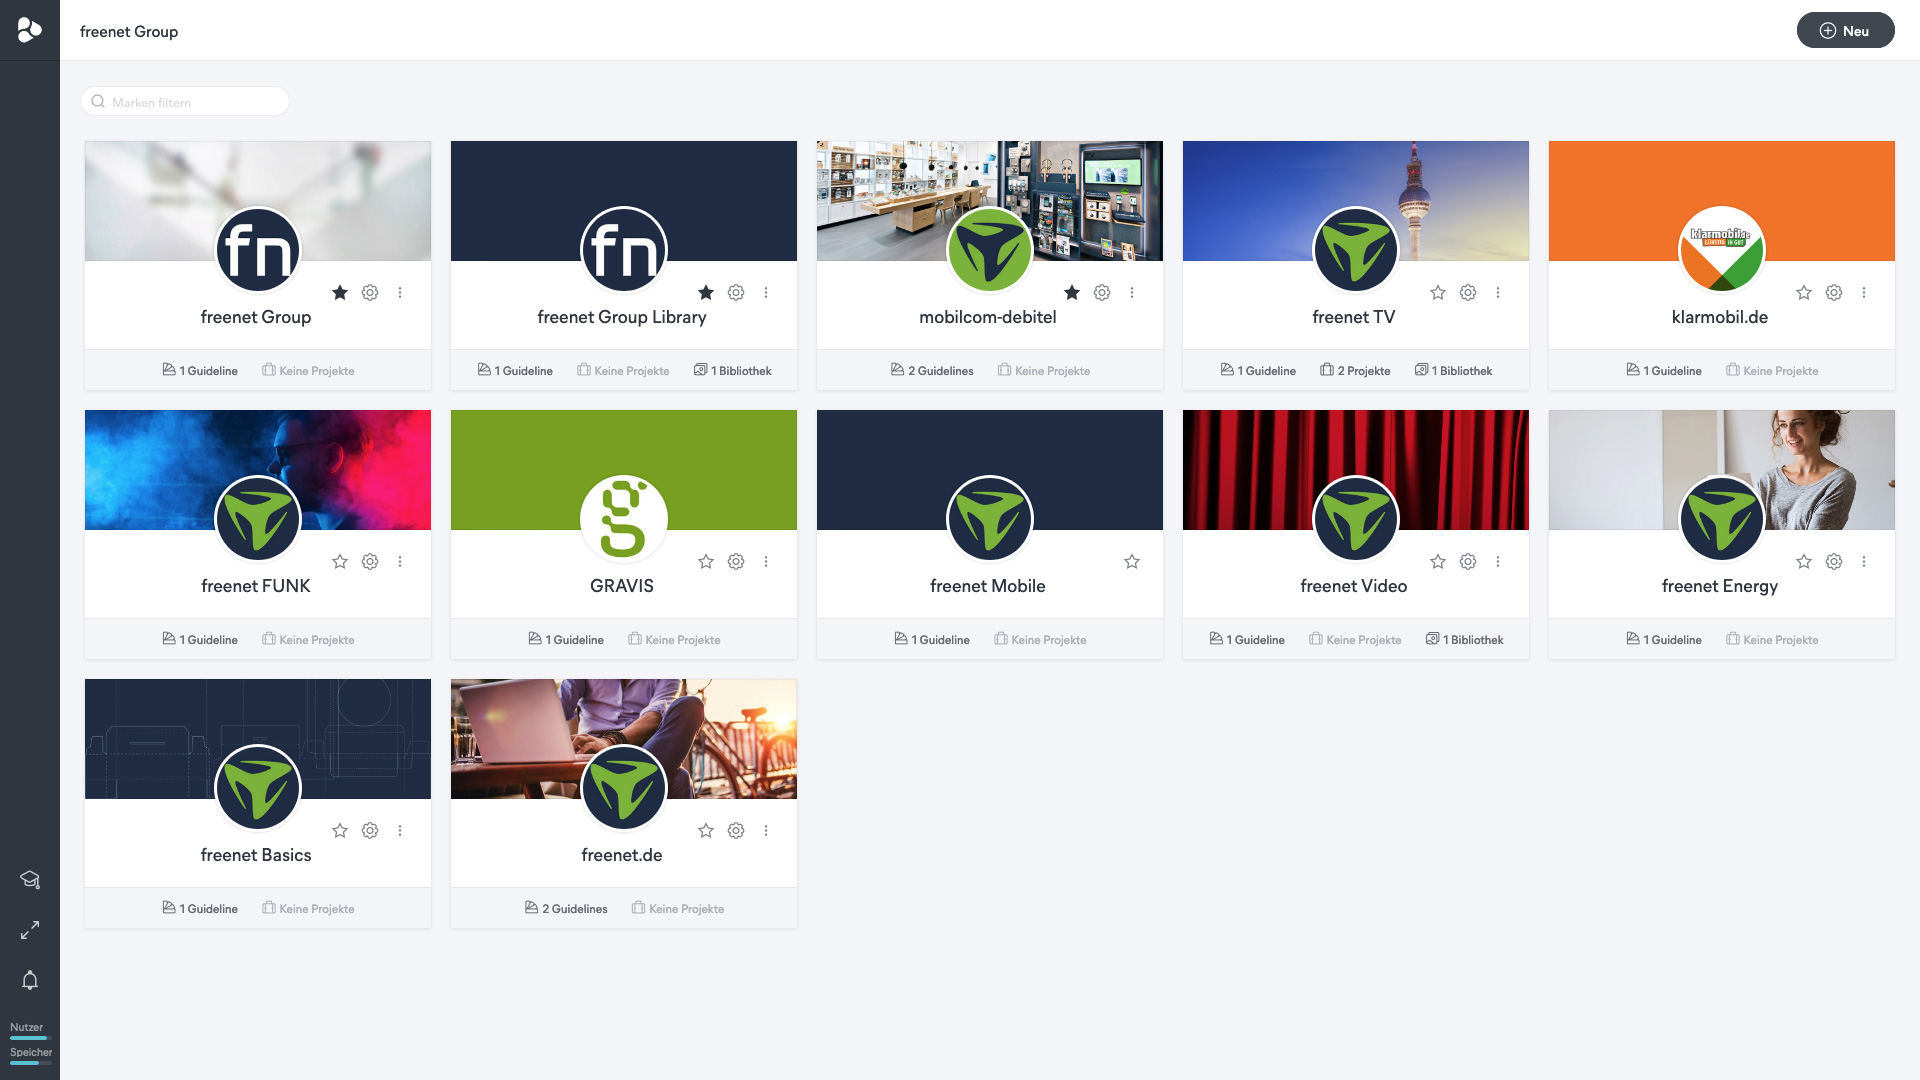 freenetGroup-Brandhub-Screenshot